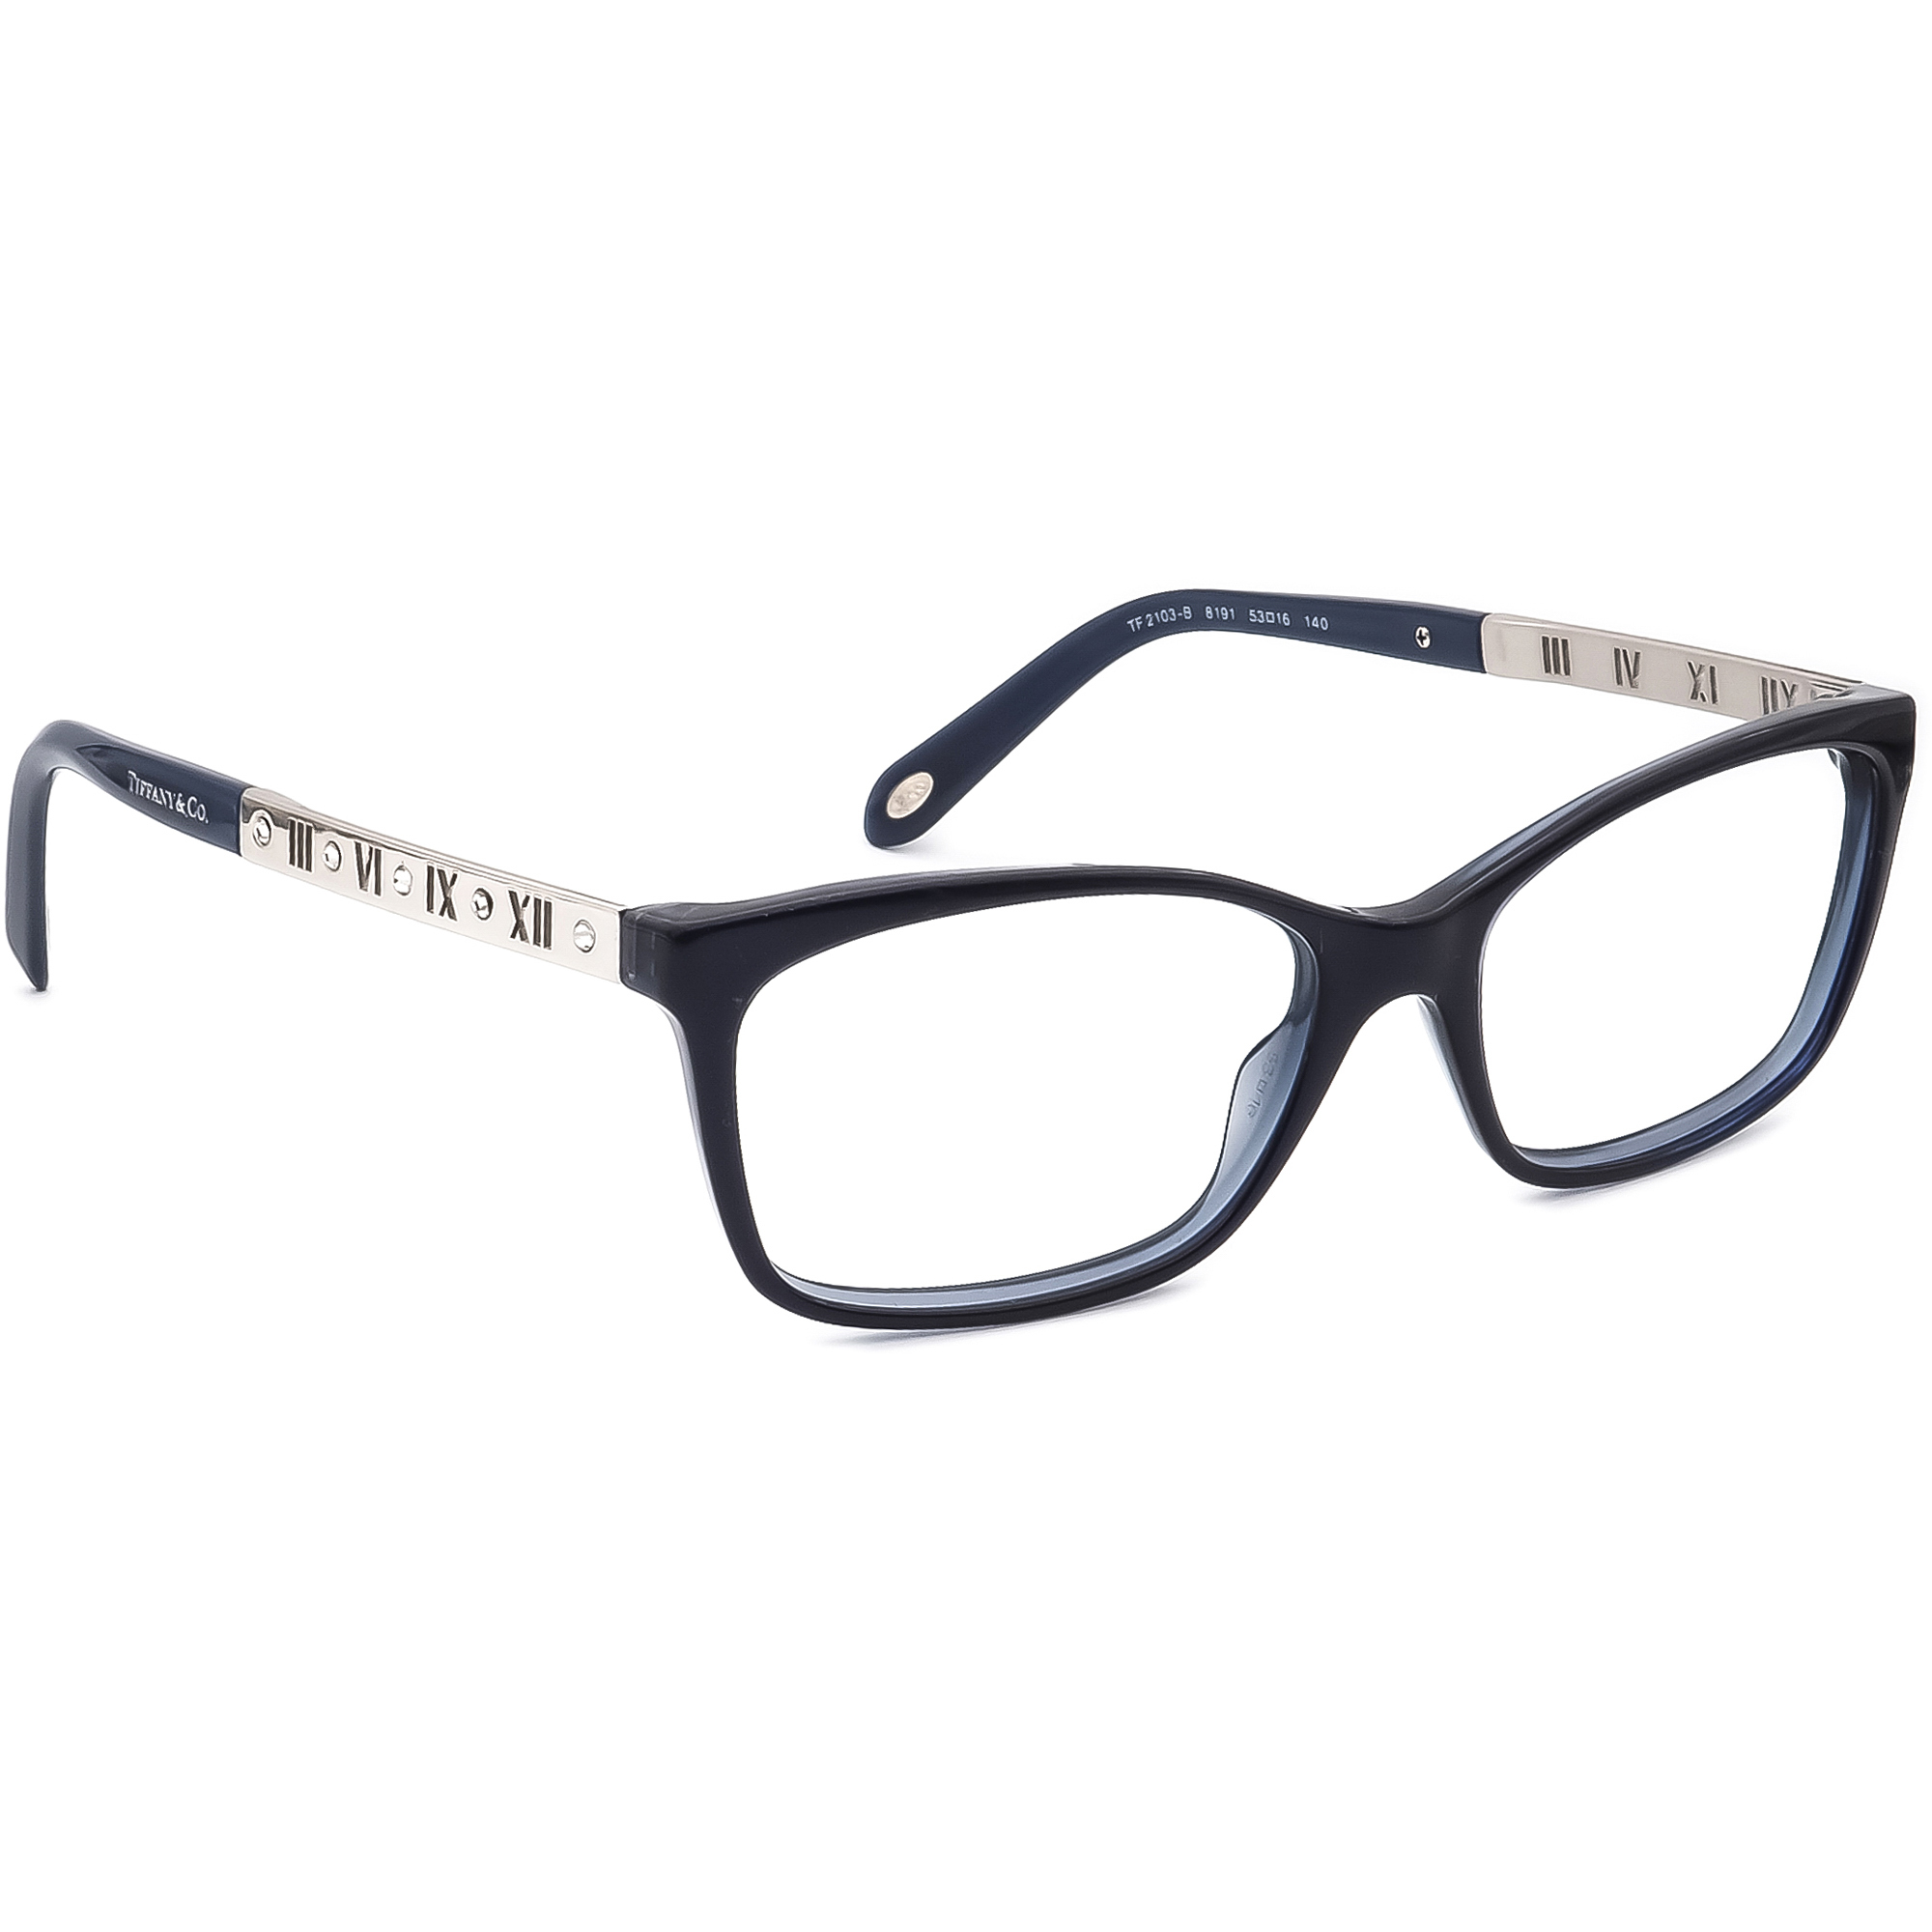 Tiffany & Co. TF 2103-B 8191 Eyeglasses